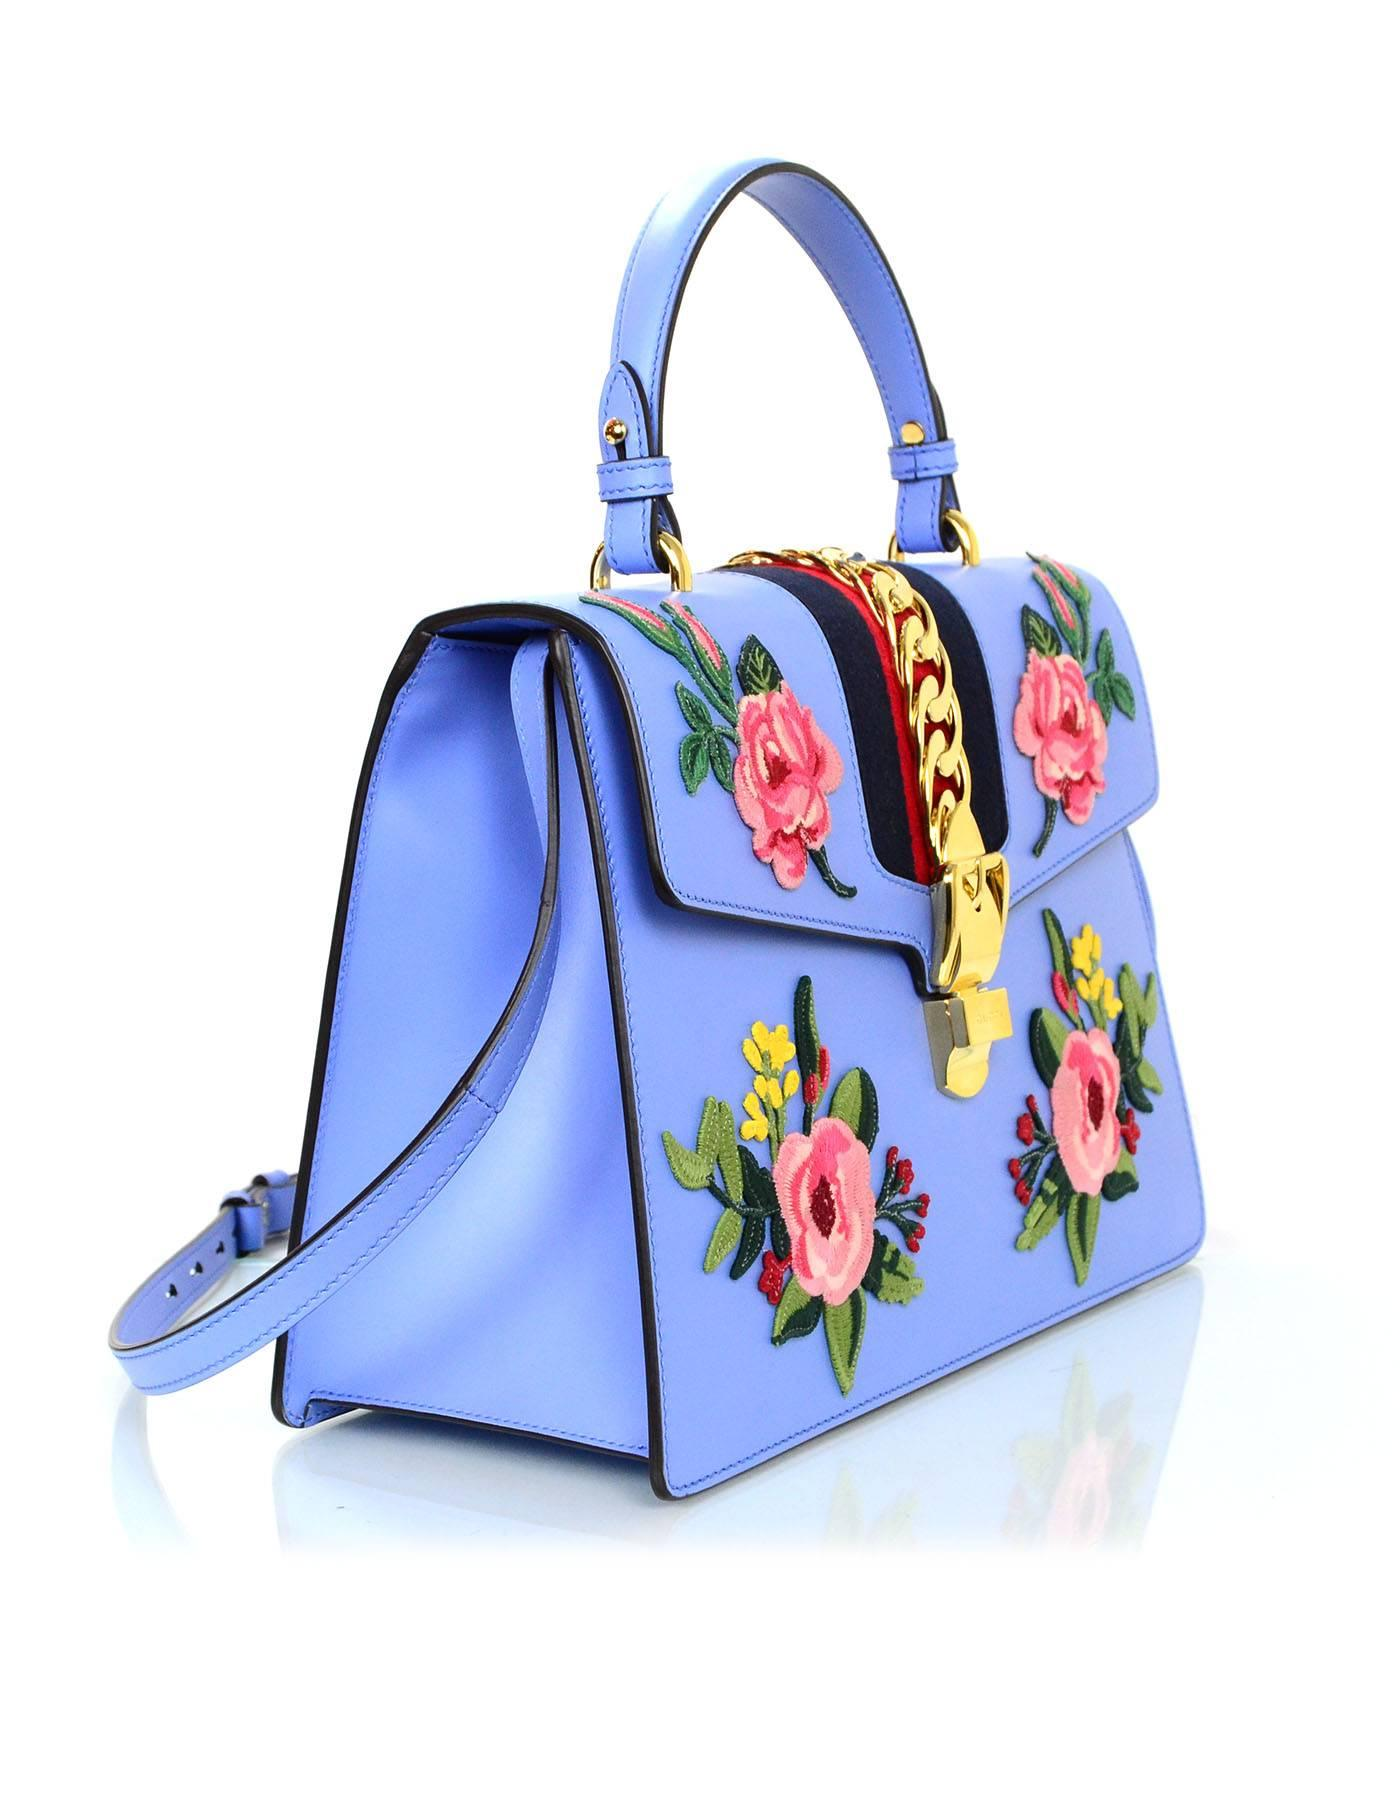 10db56d153fc Gucci 2016 Blue Leather Floral Embroidered Sylvie Handle Bag For Sale at  1stdibs